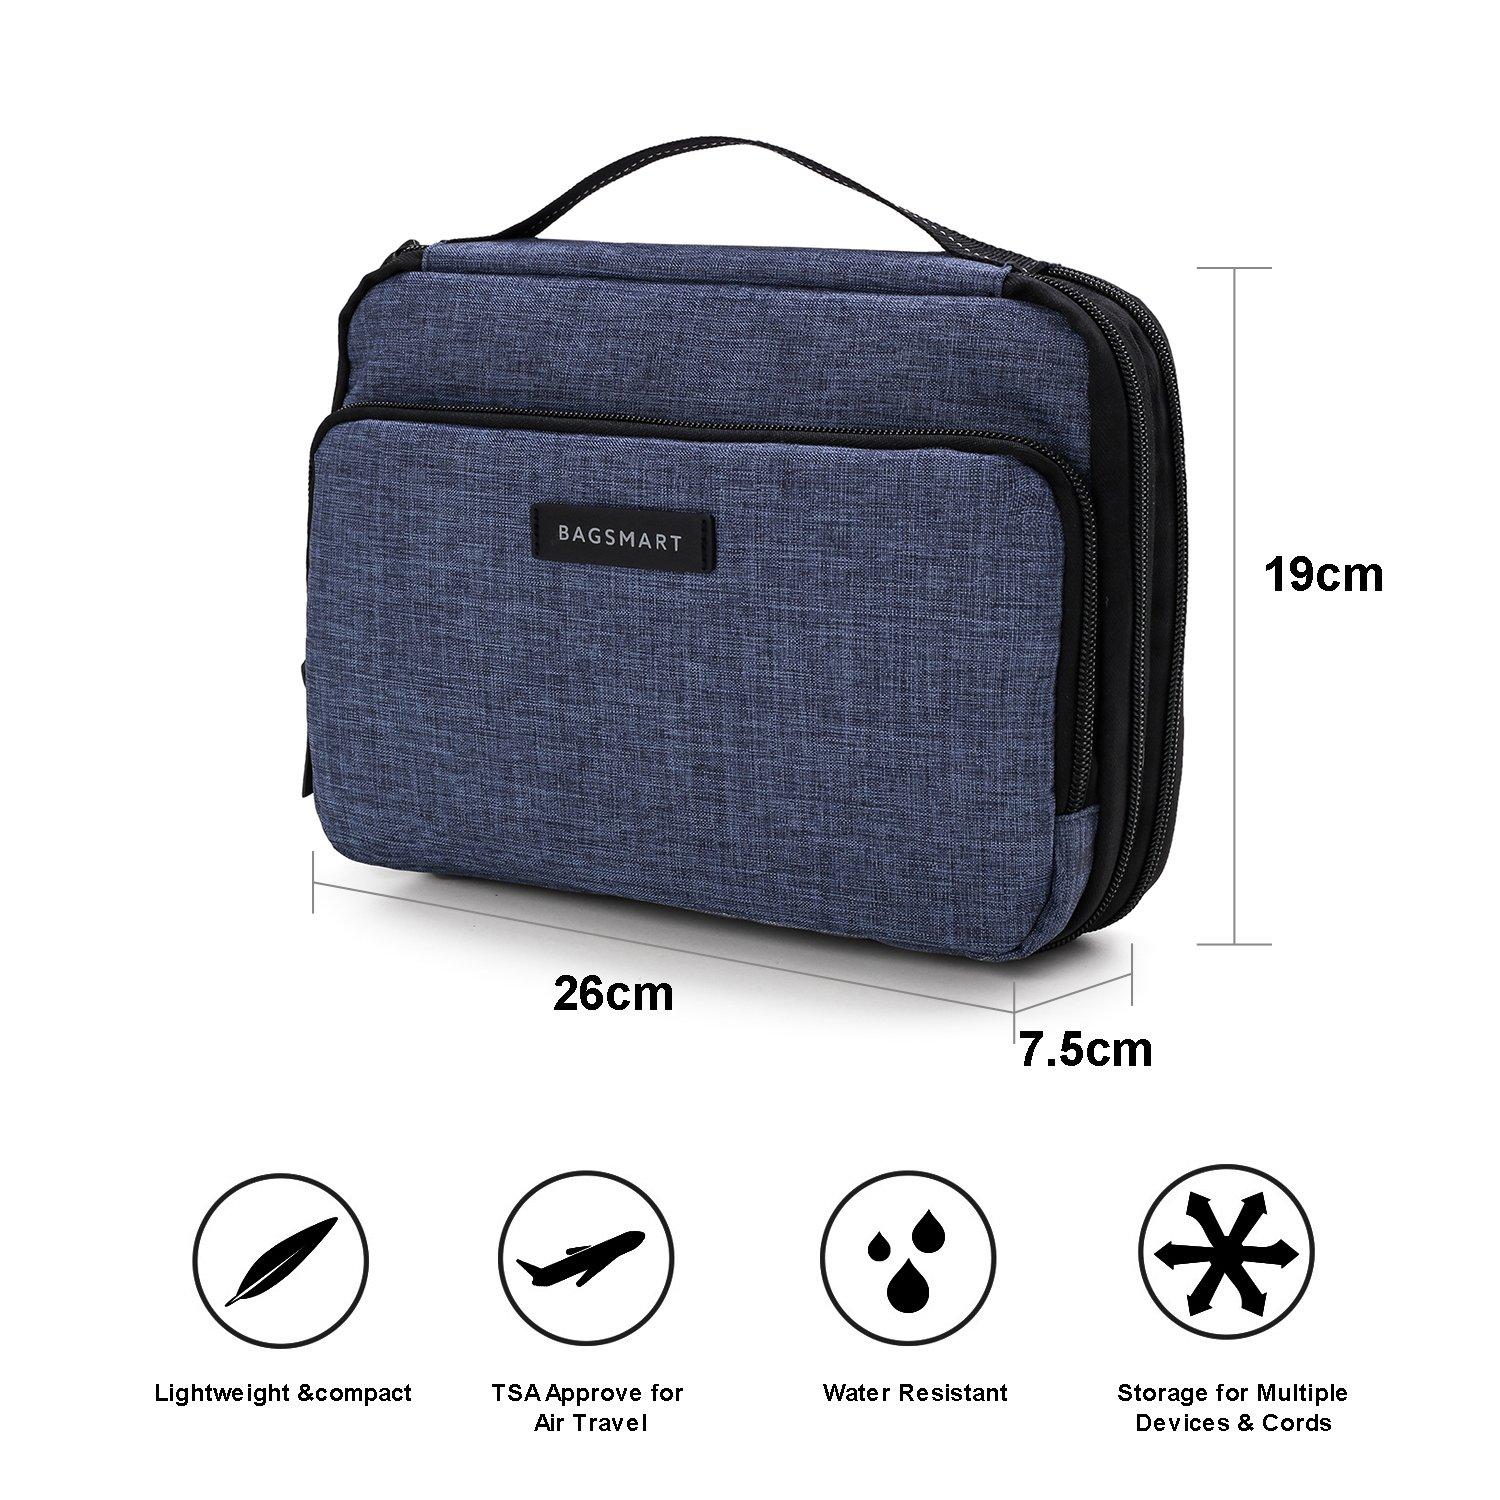 BAGSMART 3-layer Travel Electronics Cable Organizer Bag for 9.7'' iPad, Hard Drives, Cables, Charger, Kindle, Blue by BAGSMART (Image #7)